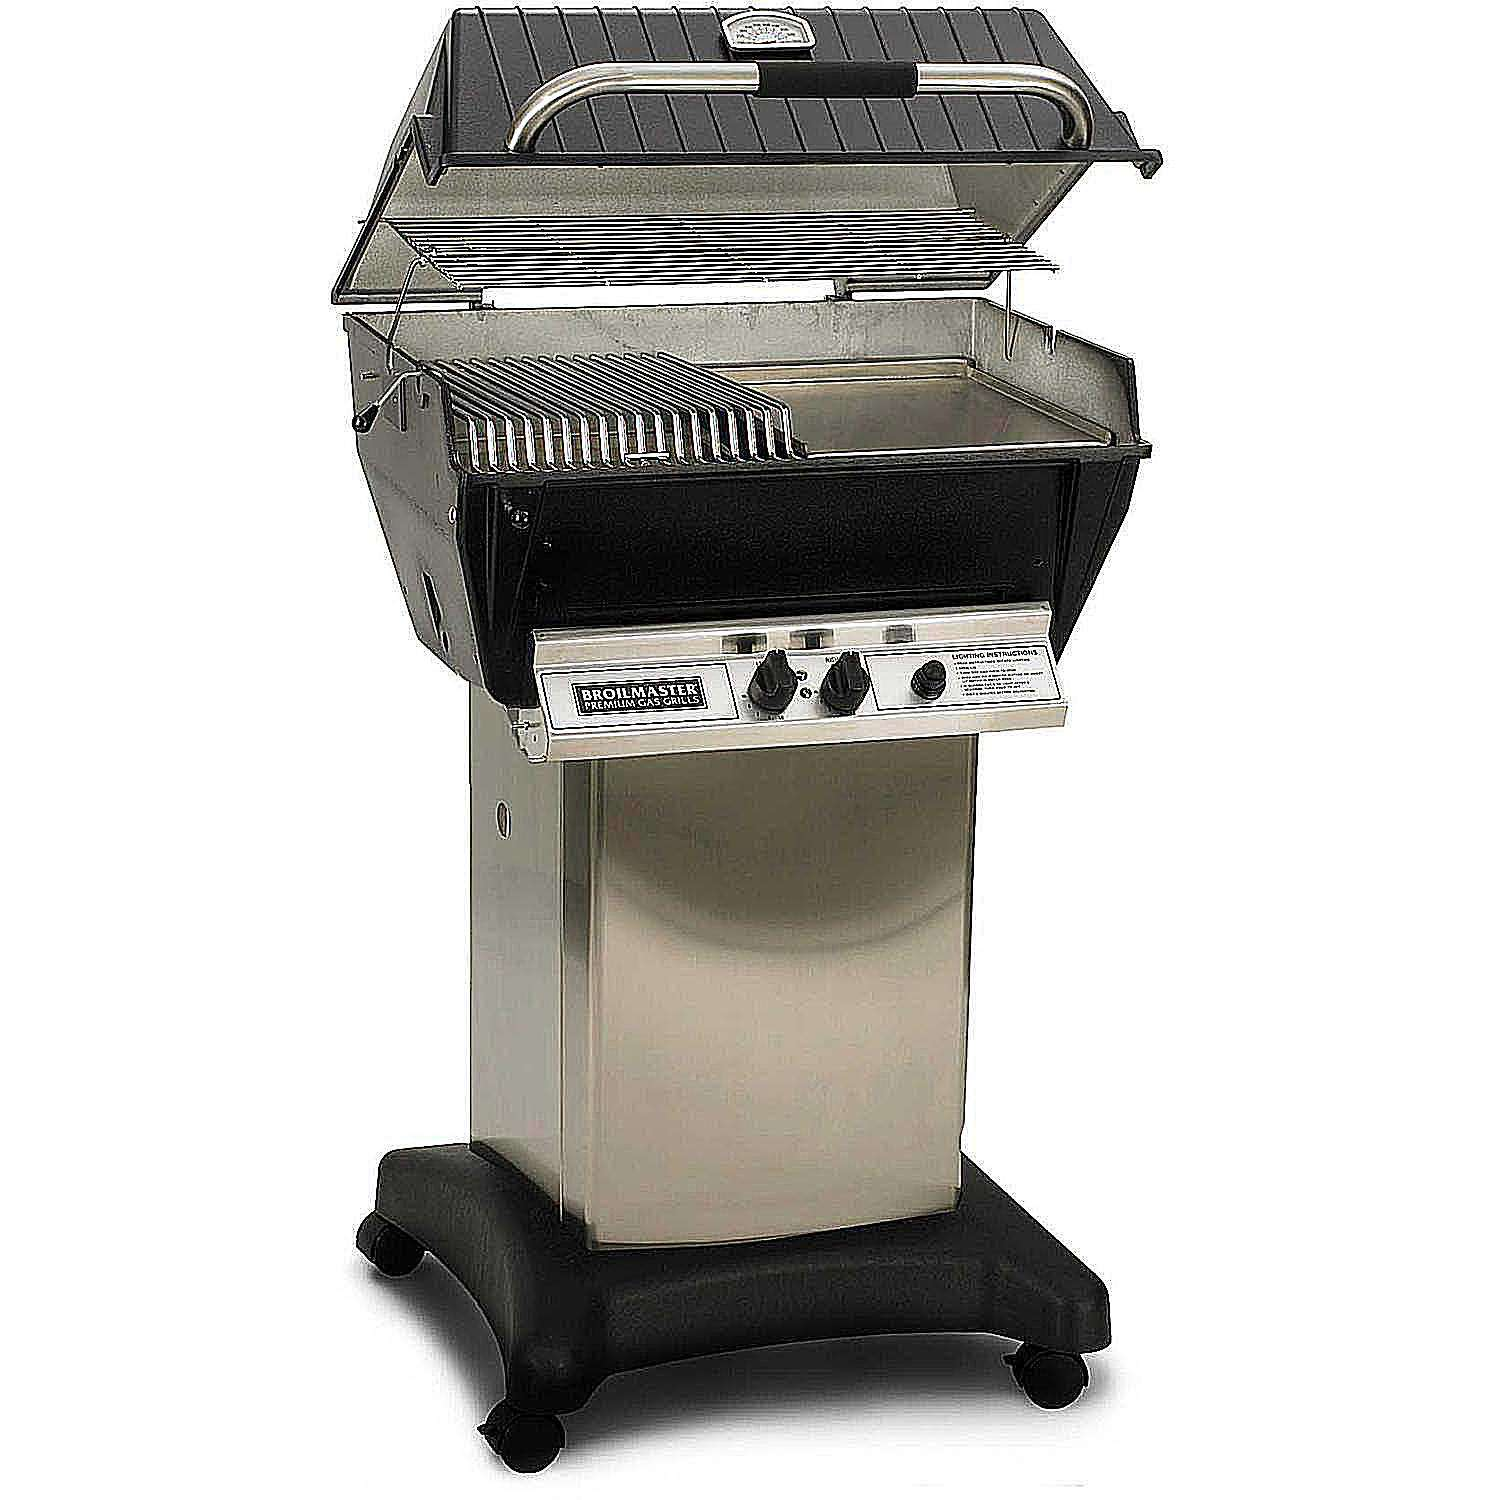 The 10 Best Gas Grills between $1 000 and $2 000 to Buy for 2018